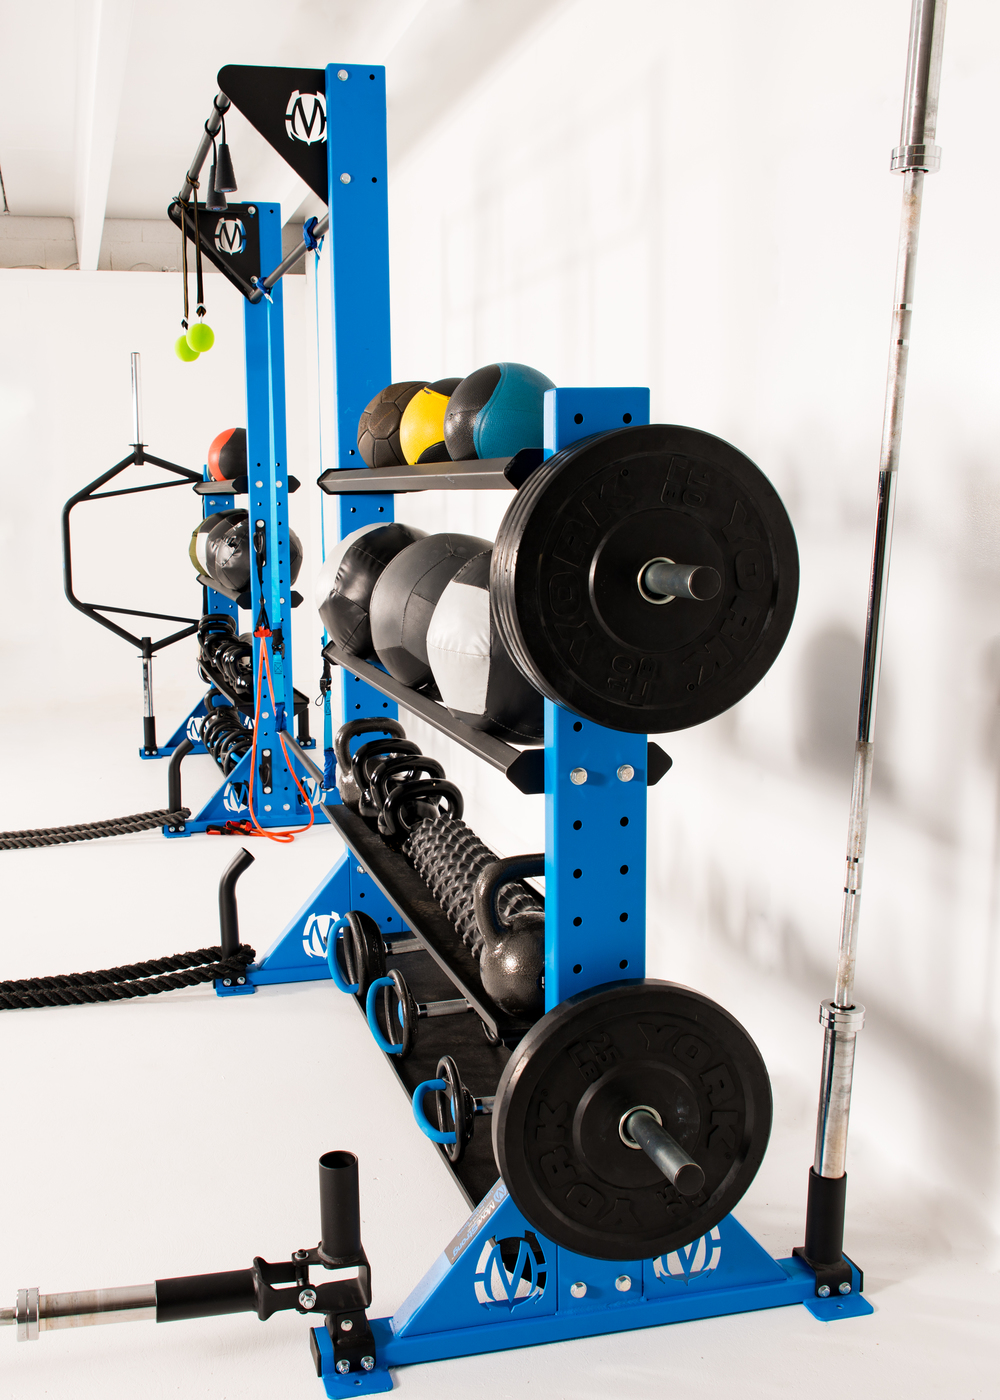 Bumper plate storage horns